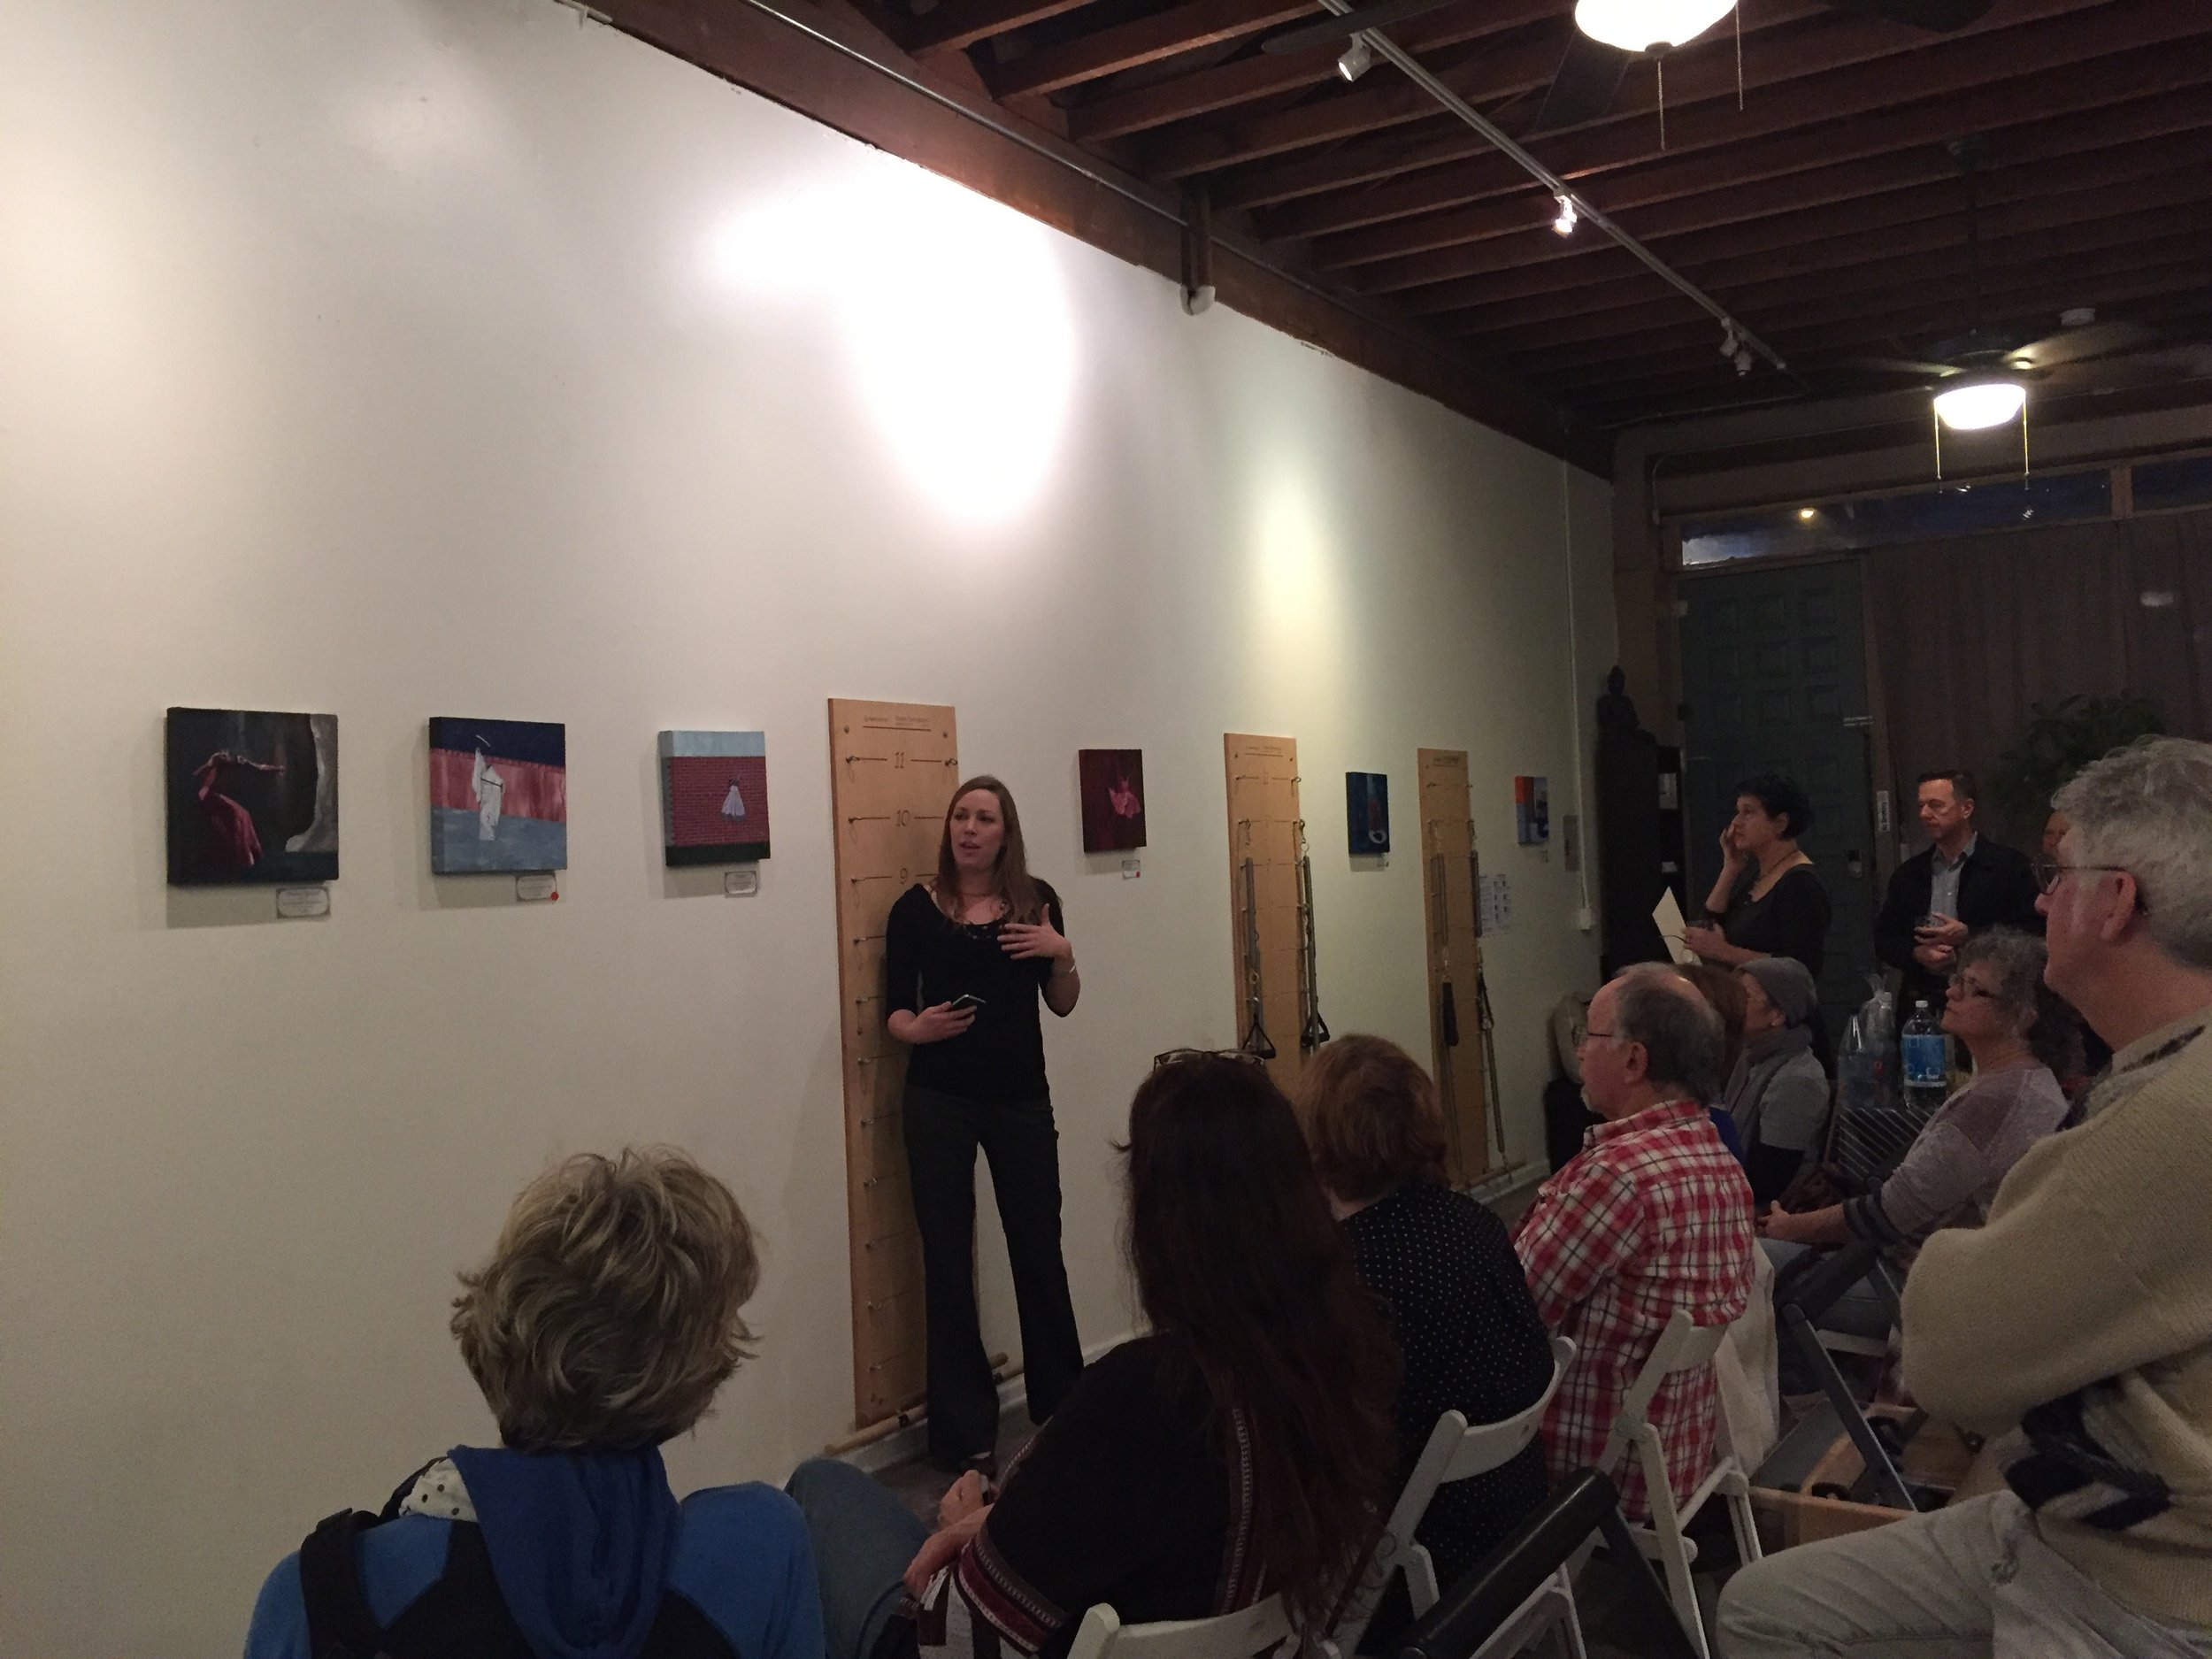 Christine Rasmussen sharing about her  Flawless  series.